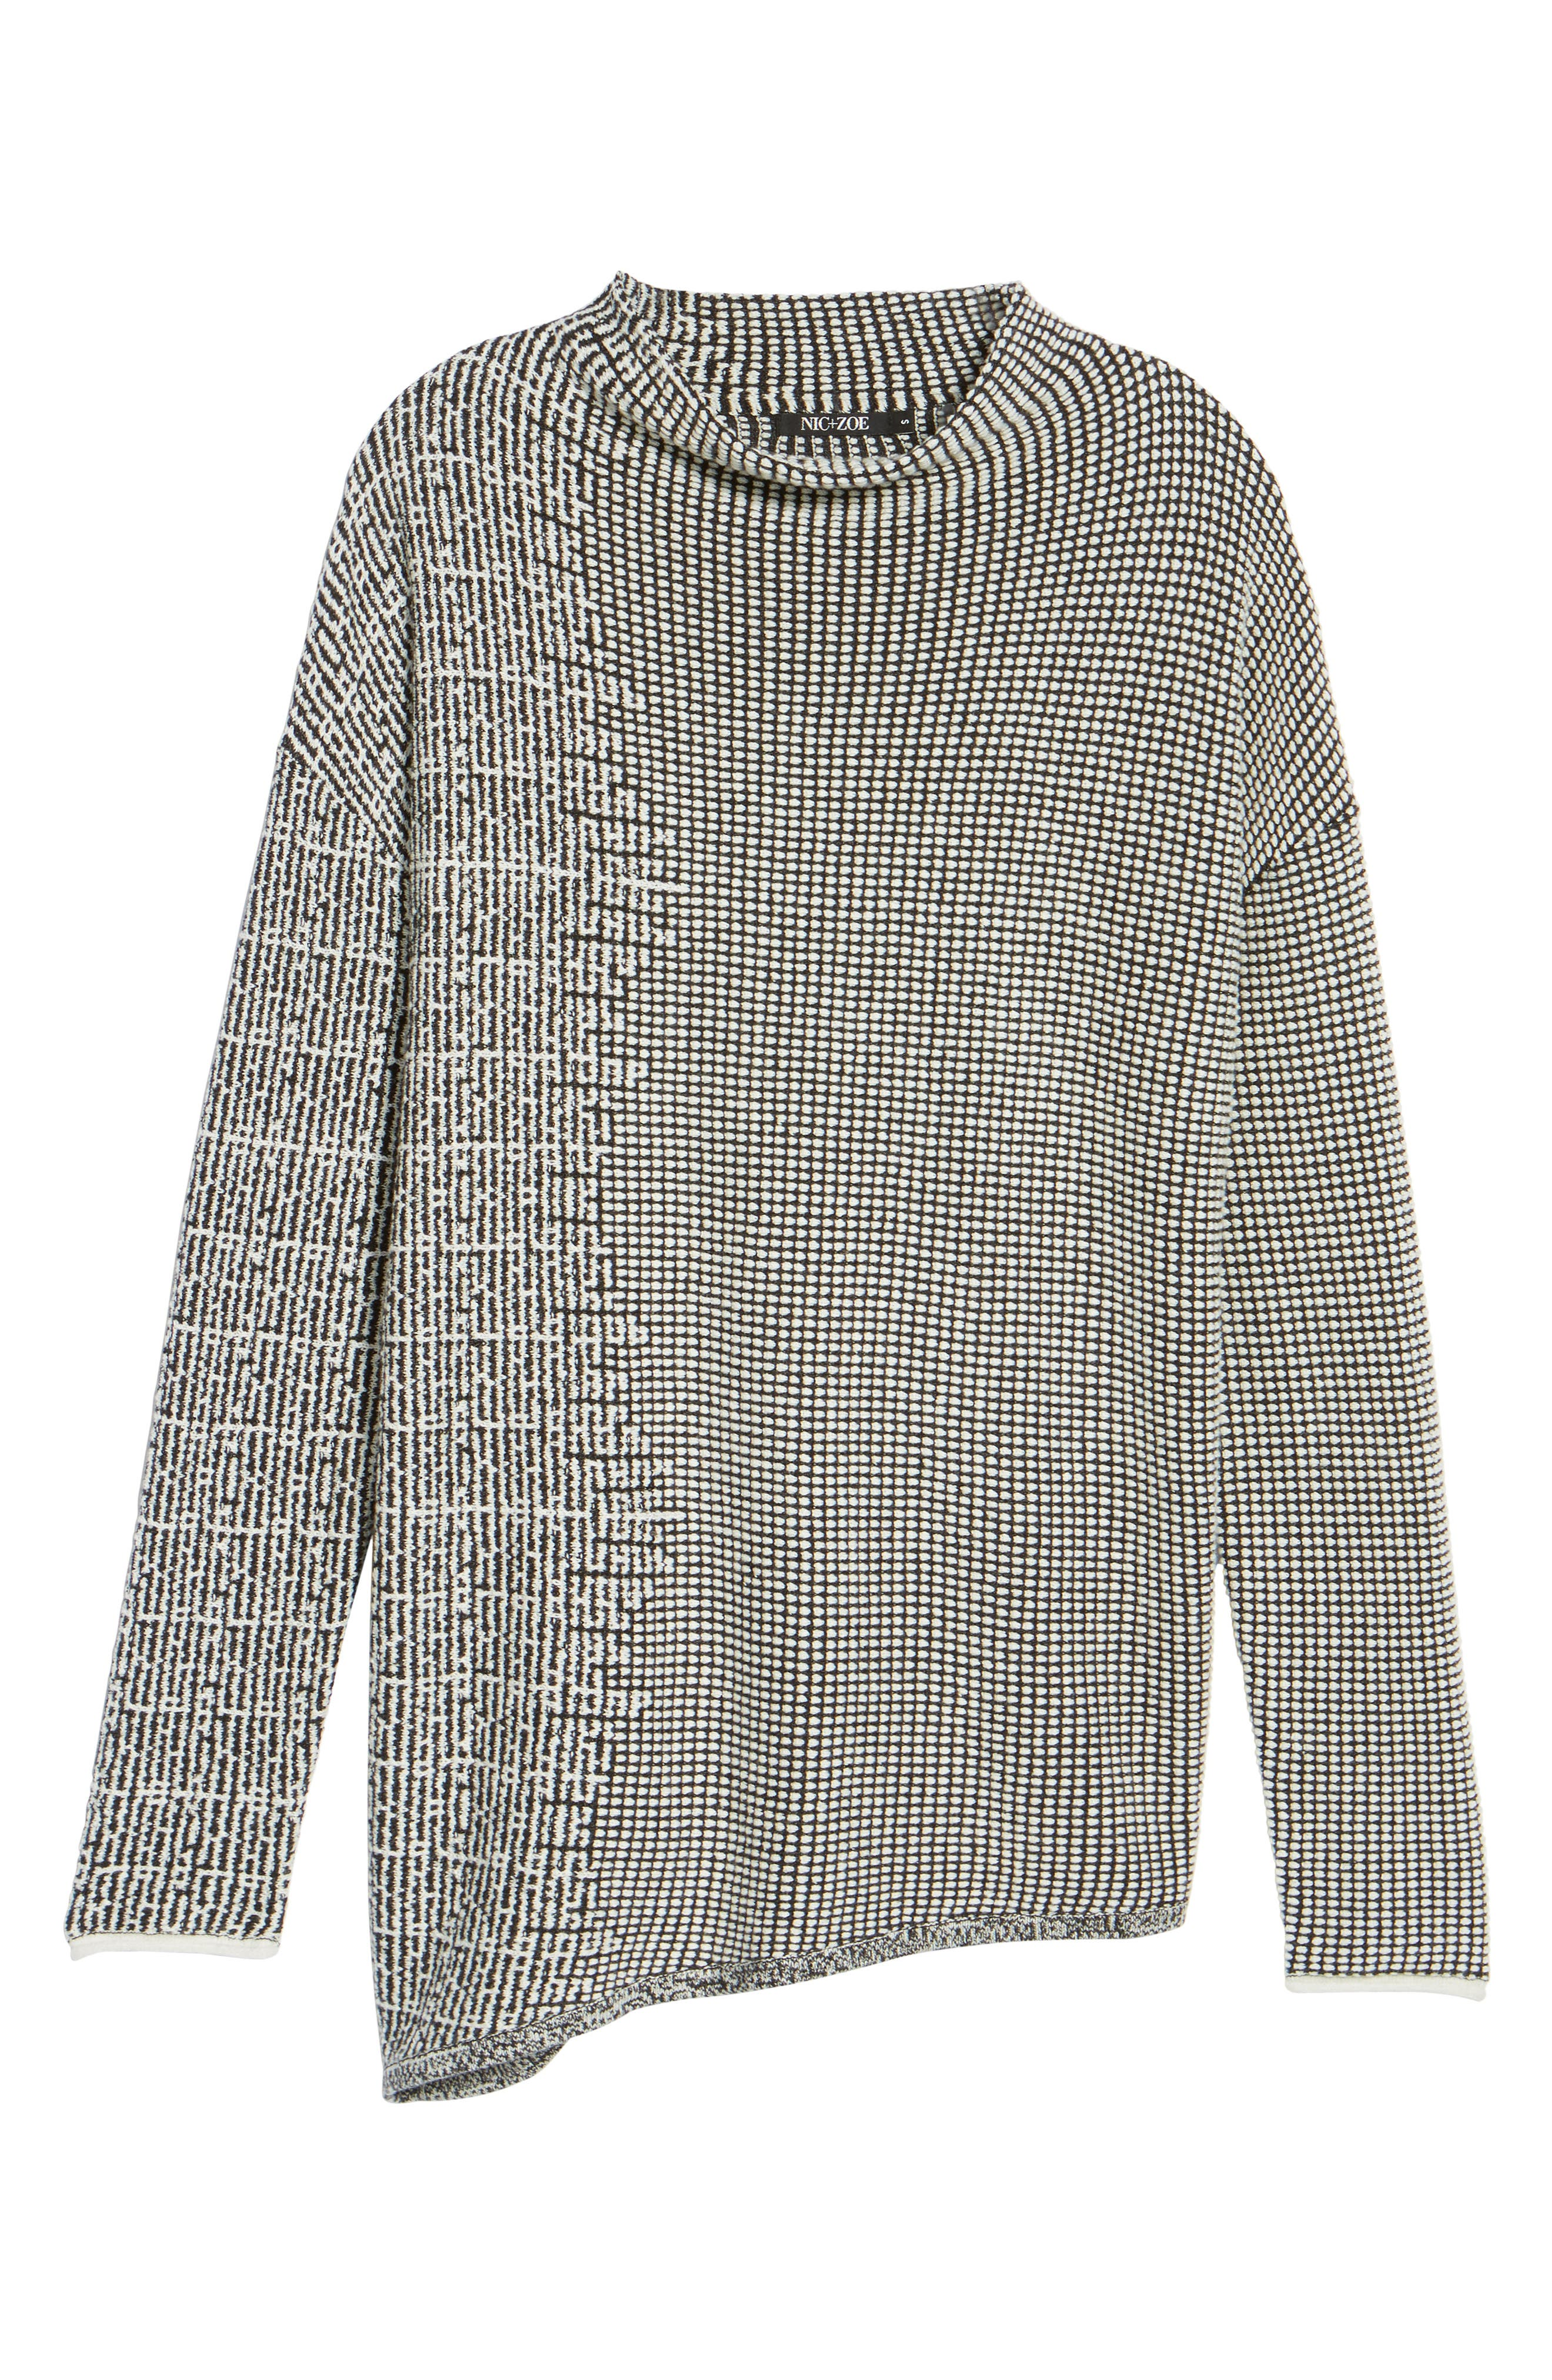 Frosted Fall Sweater,                             Alternate thumbnail 6, color,                             090